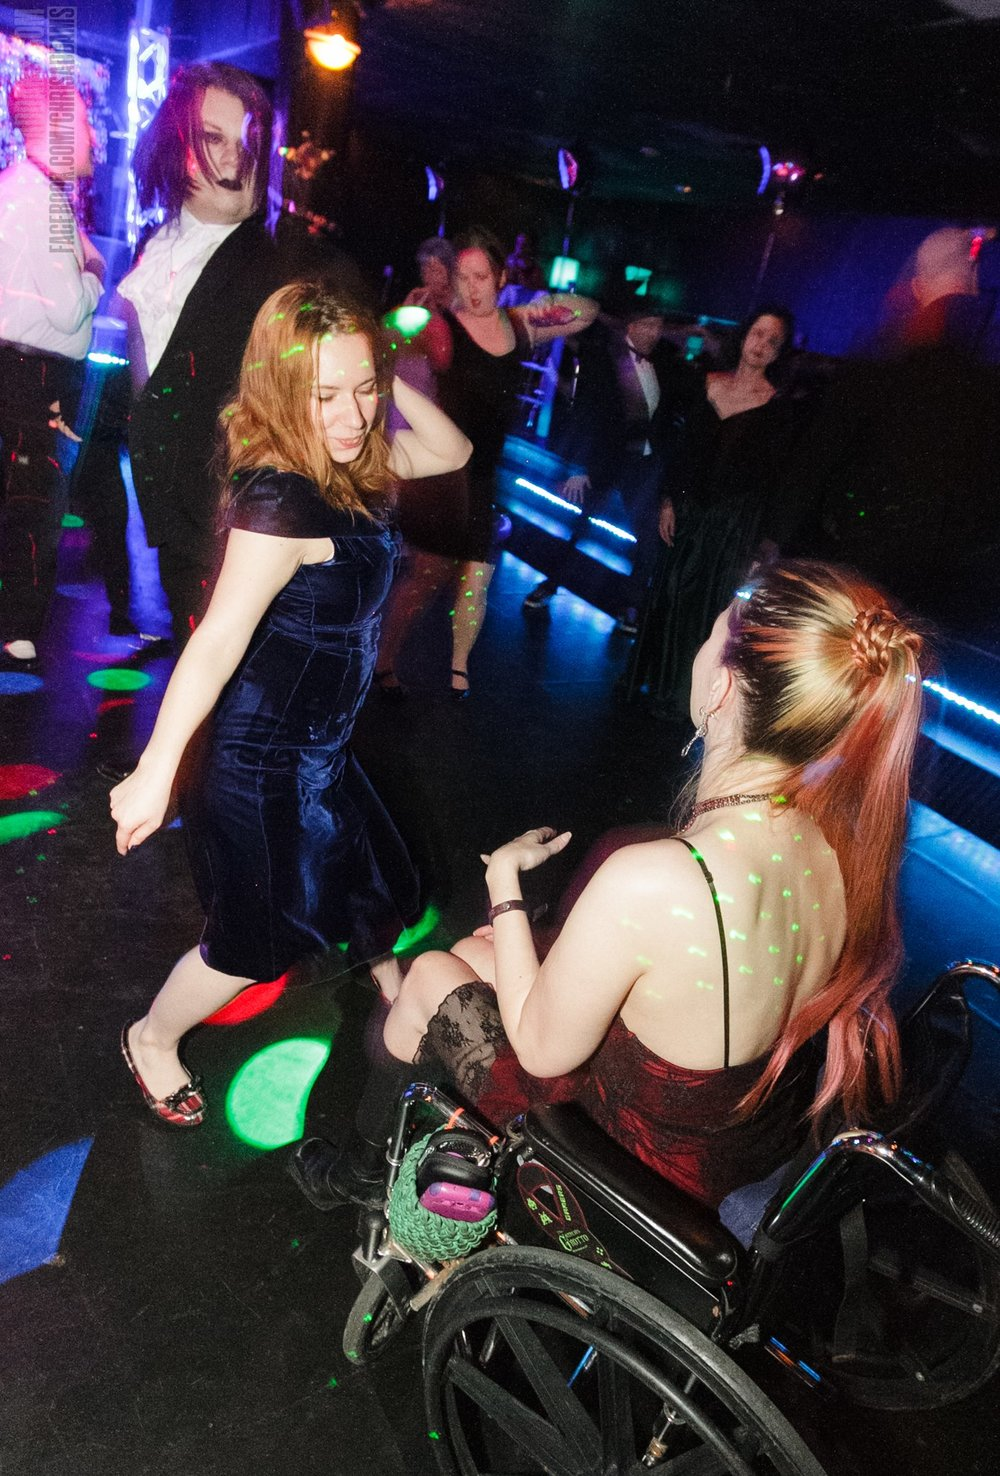 TheHavenClub-Goth-Industrial-Dance-Alternative-Northampton-MA (22).jpg